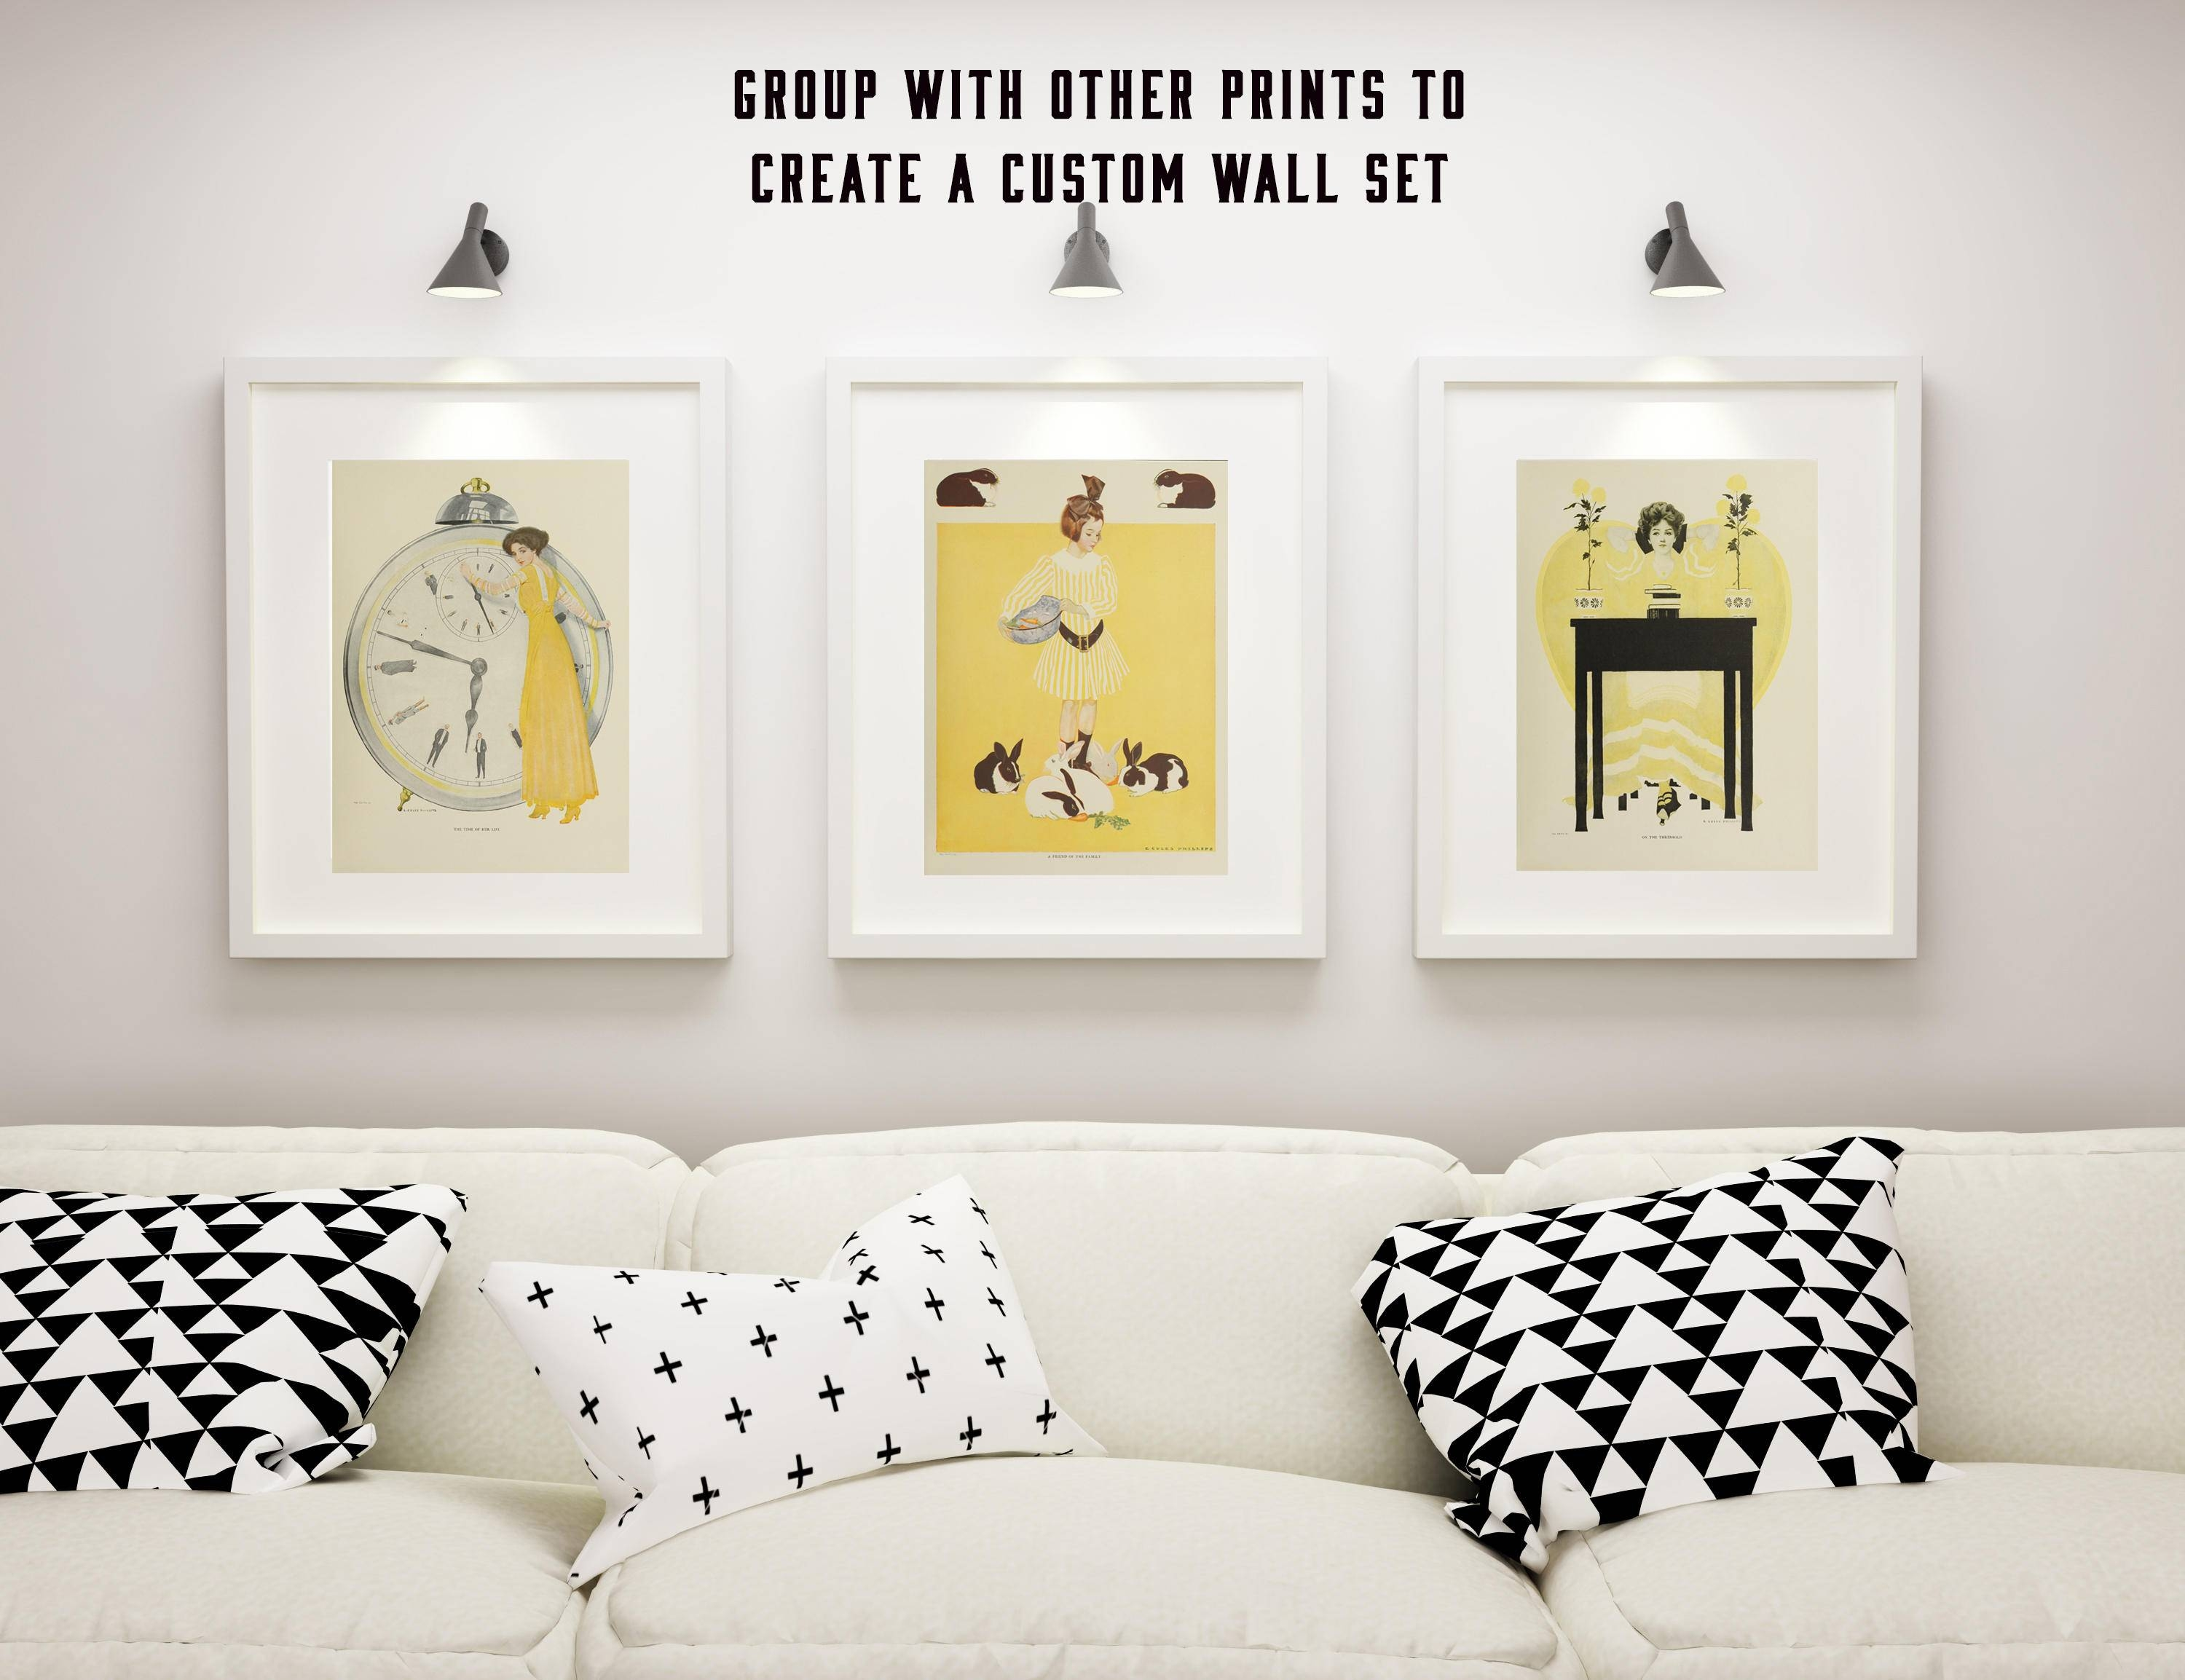 Wall Art For Living Room, Bedroom Framed Art, Art Deco Decor, Wall Throughout 2018 Bedroom Framed Wall Art (View 6 of 20)